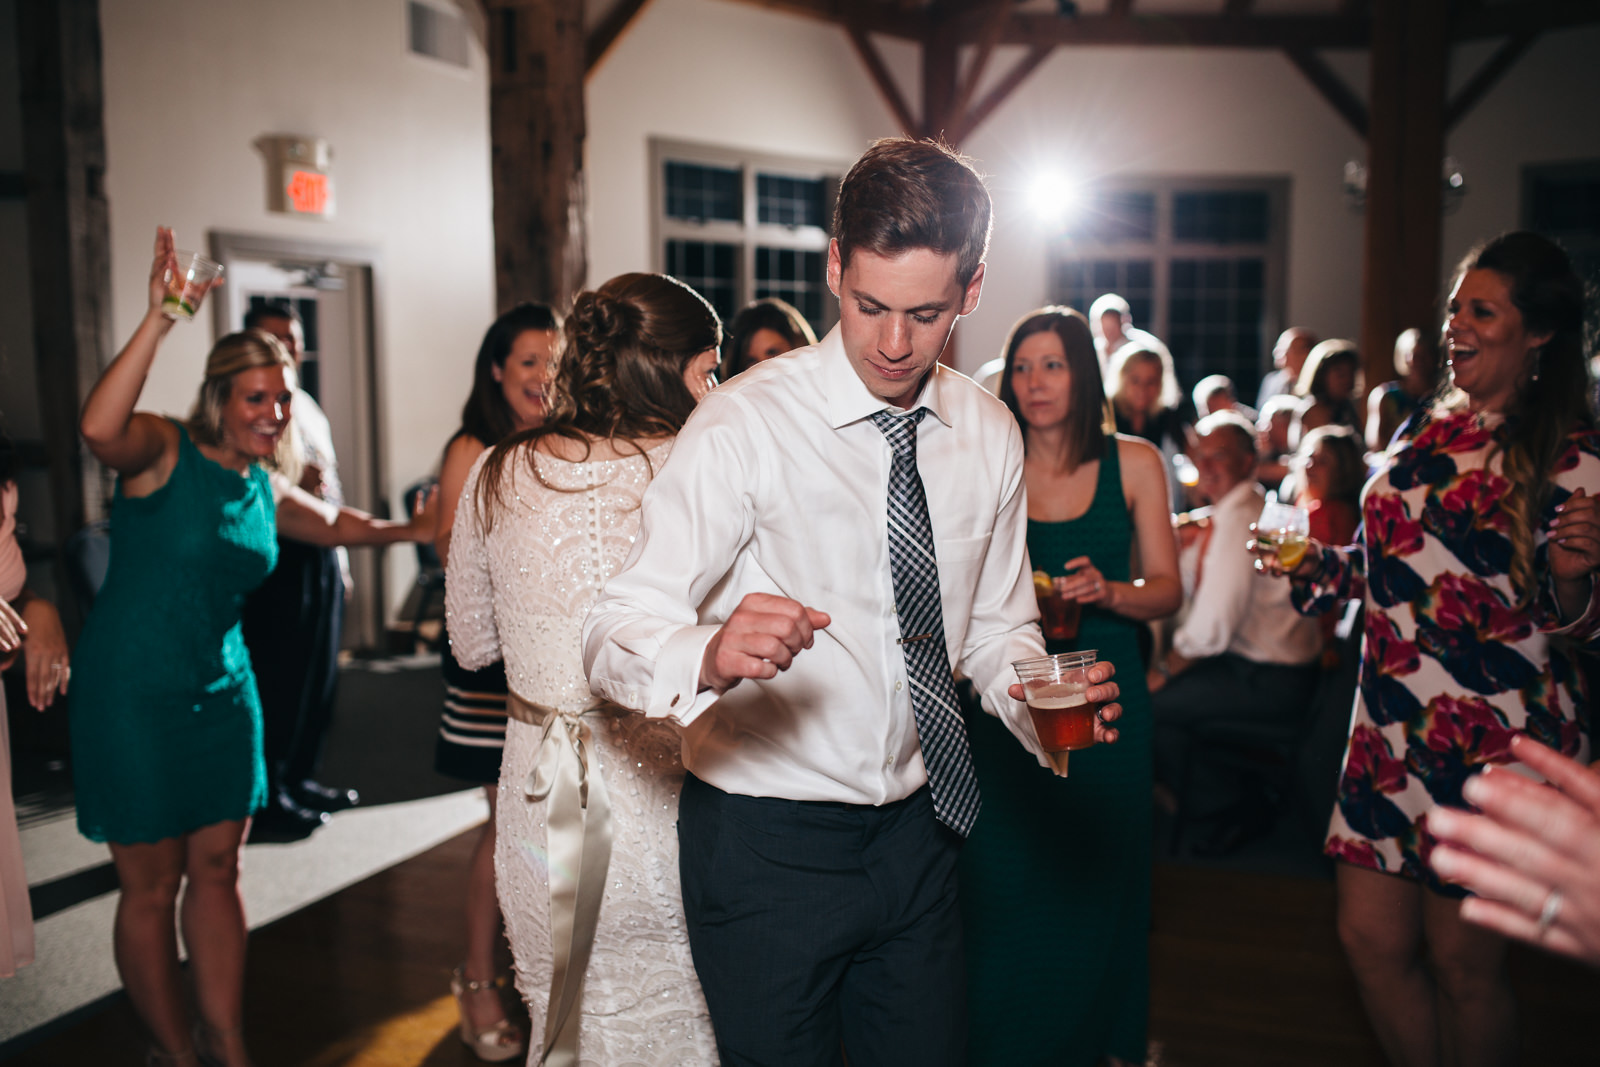 Bride and groom dance at reception at Quailcrest Farm in Wooster, Ohio.